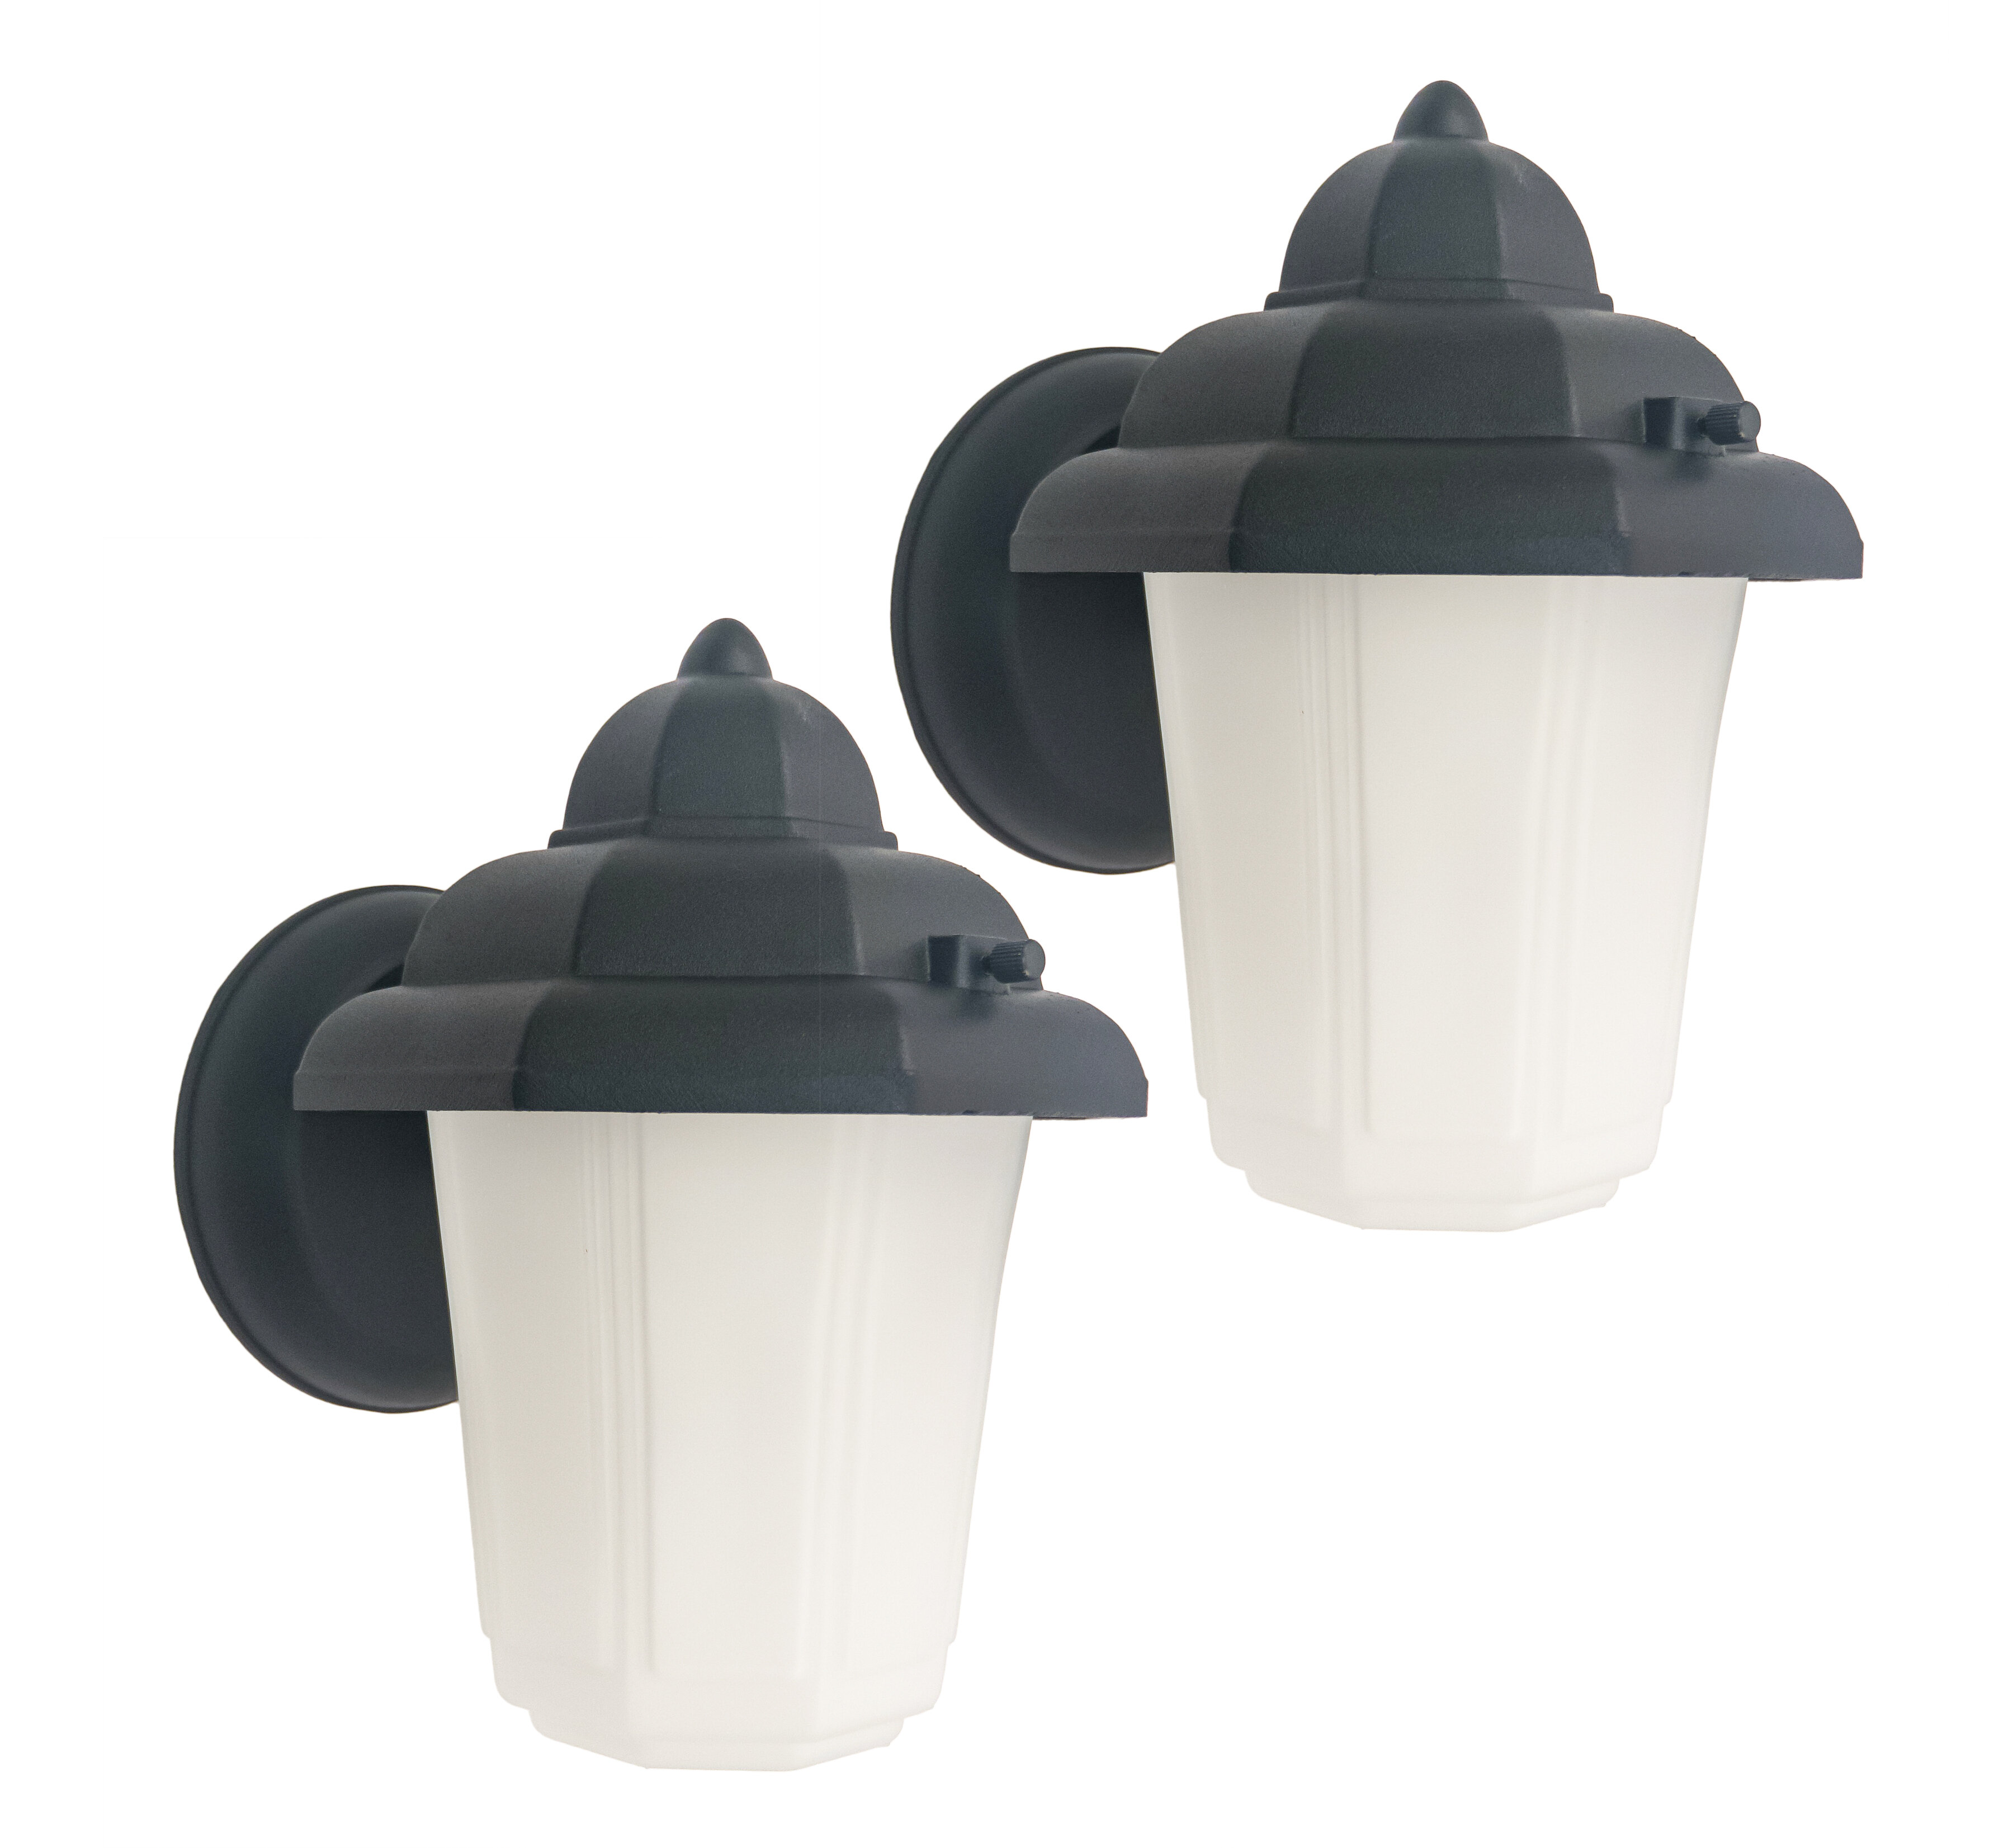 Integrated Led Canora Grey Outdoor Lights You Ll Love In 2021 Wayfair